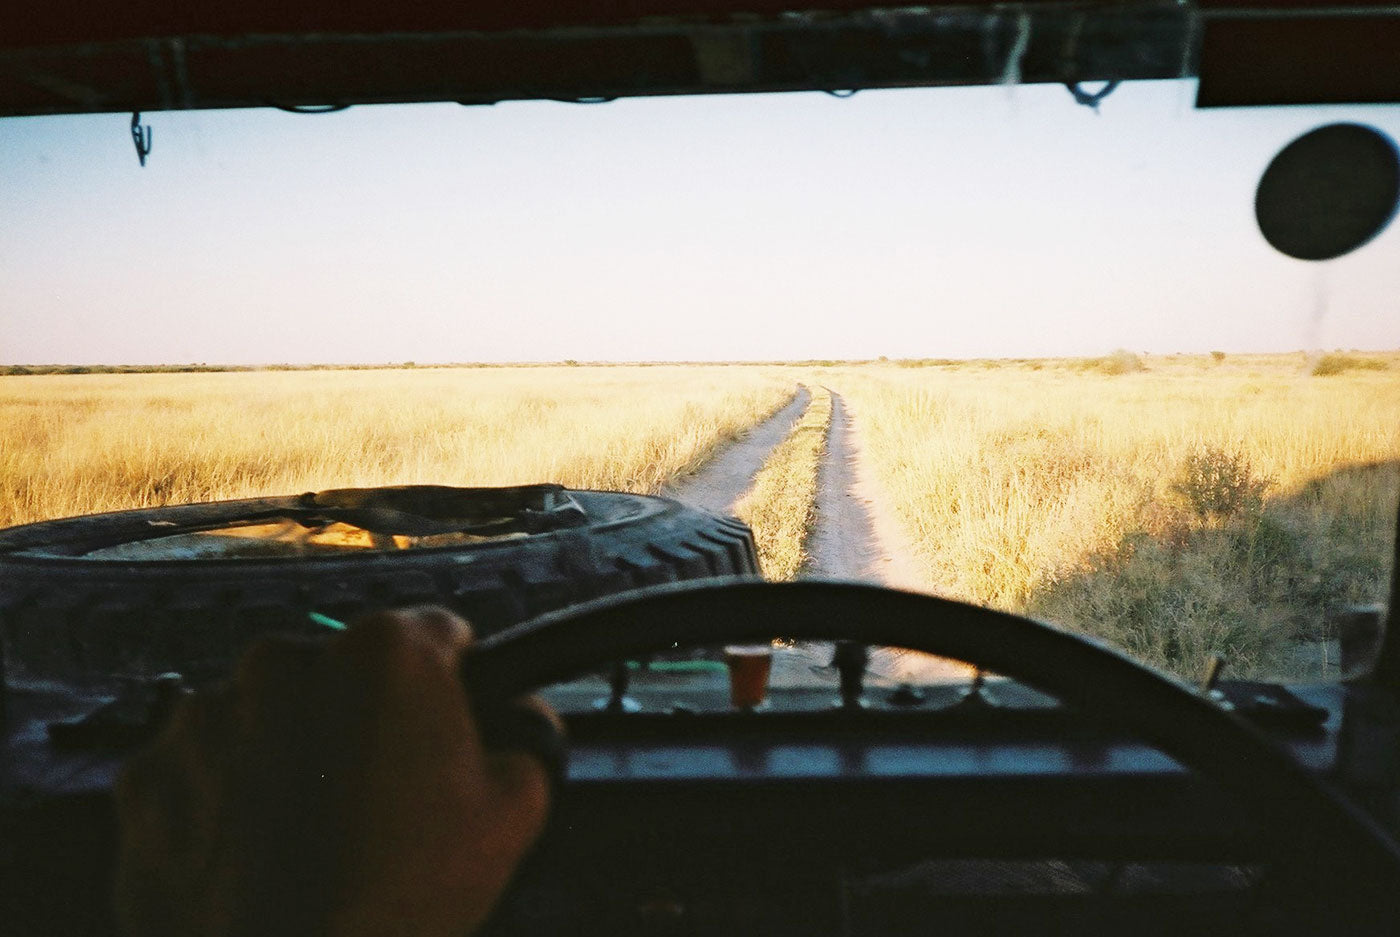 View from the steering wheel outside. Empty rough road in Botswana. (Photo: Lille-Gramberg-Danielsen & Lukas Beuster)